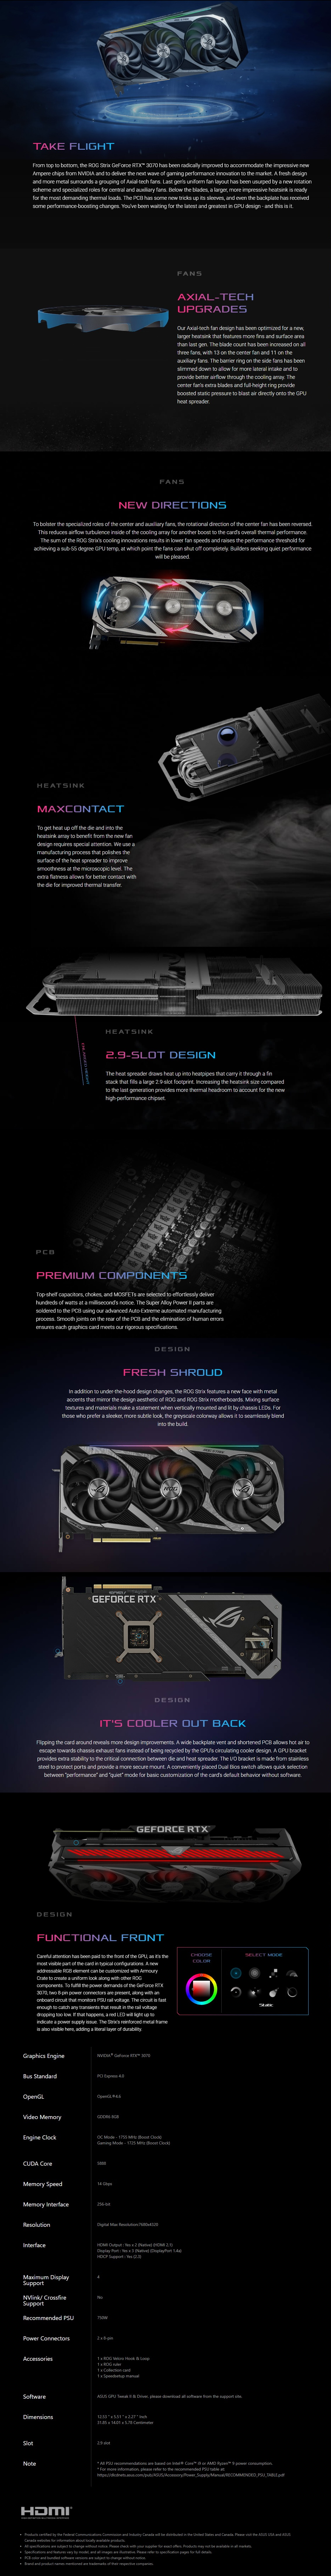 A large marketing image providing additional information about the product ASUS GeForce RTX 3070 ROG Strix Gaming 8GB GDDR6 - Additional alt info not provided